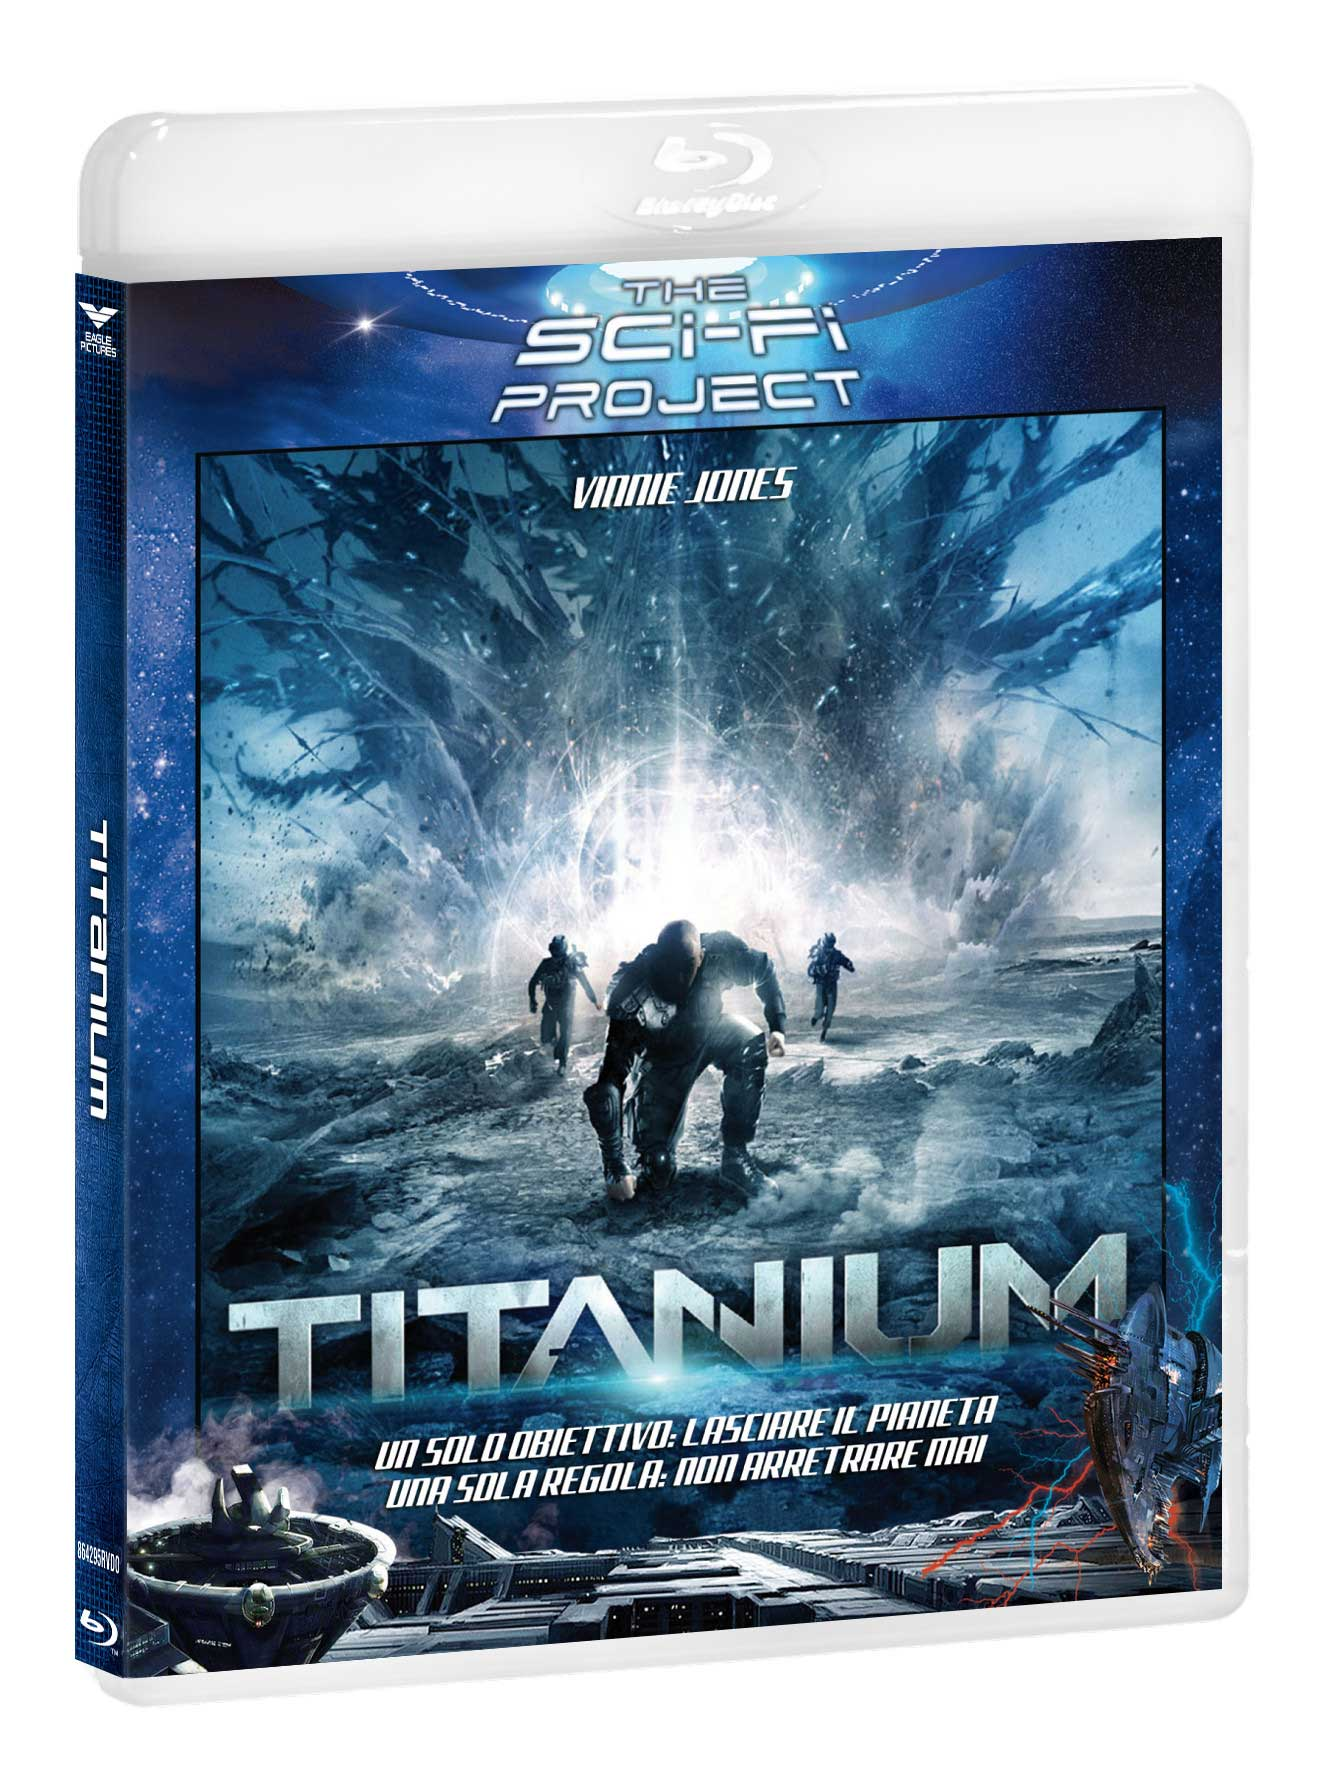 TITANIUM (SCI-FI PROJECT) - BLU RAY